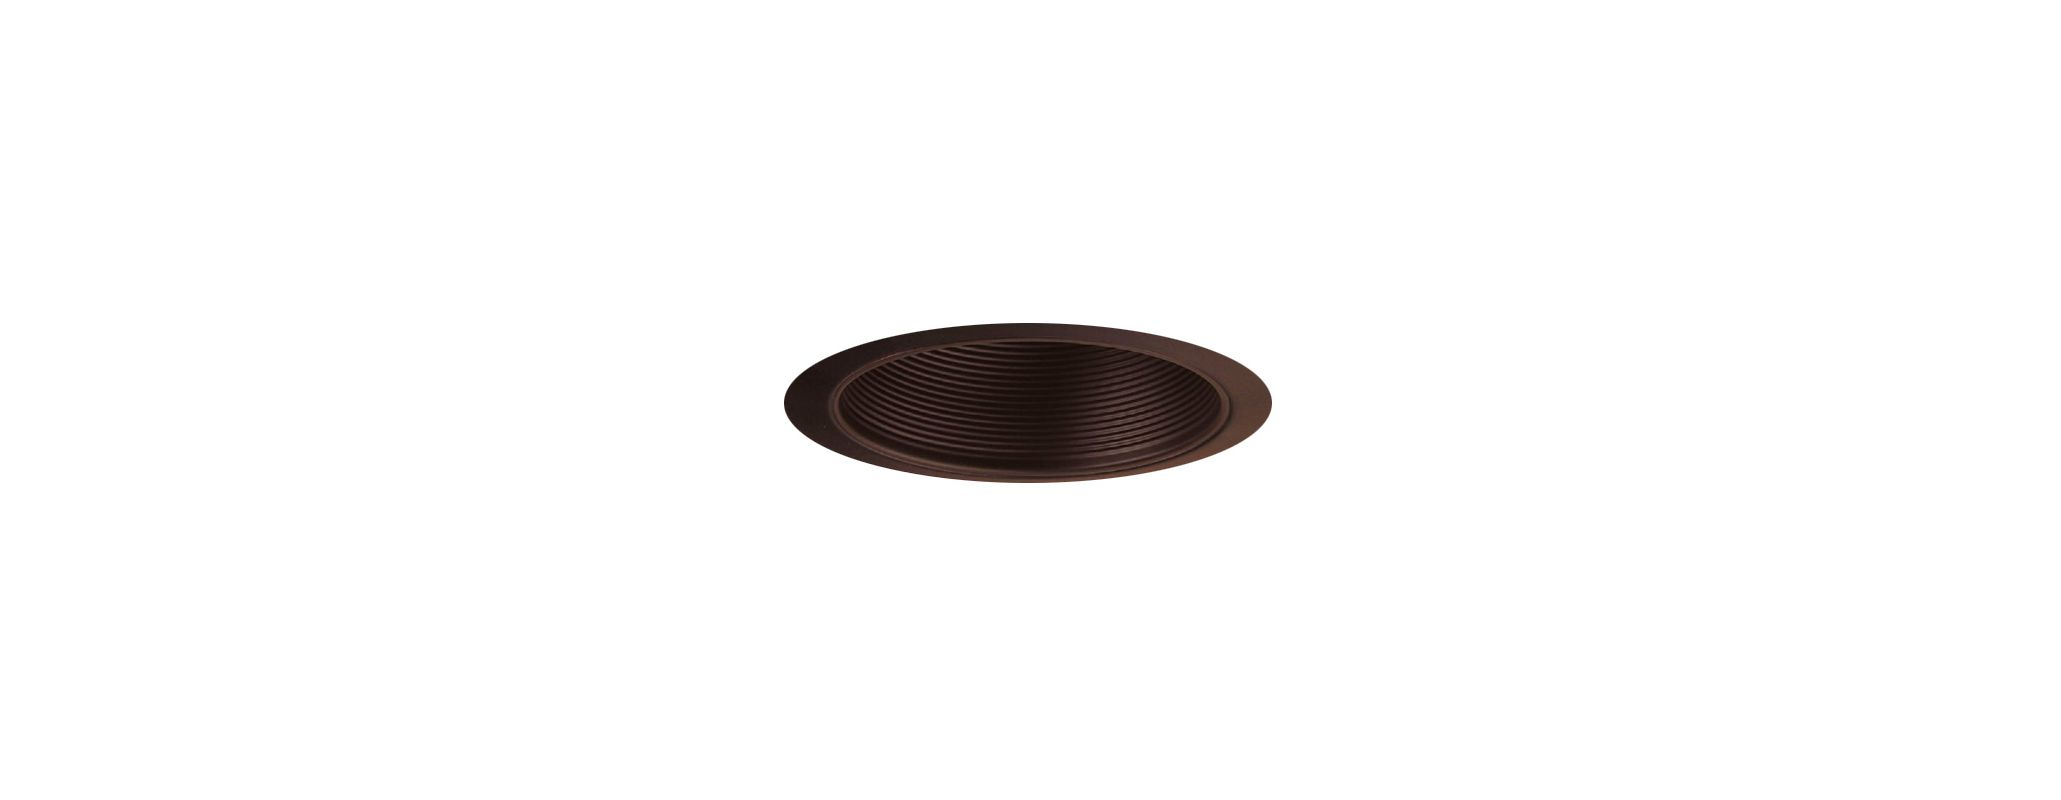 "Elco ELM40 6"" Recessed Lighting Trim - Metal Stepped Baffle Bronze"